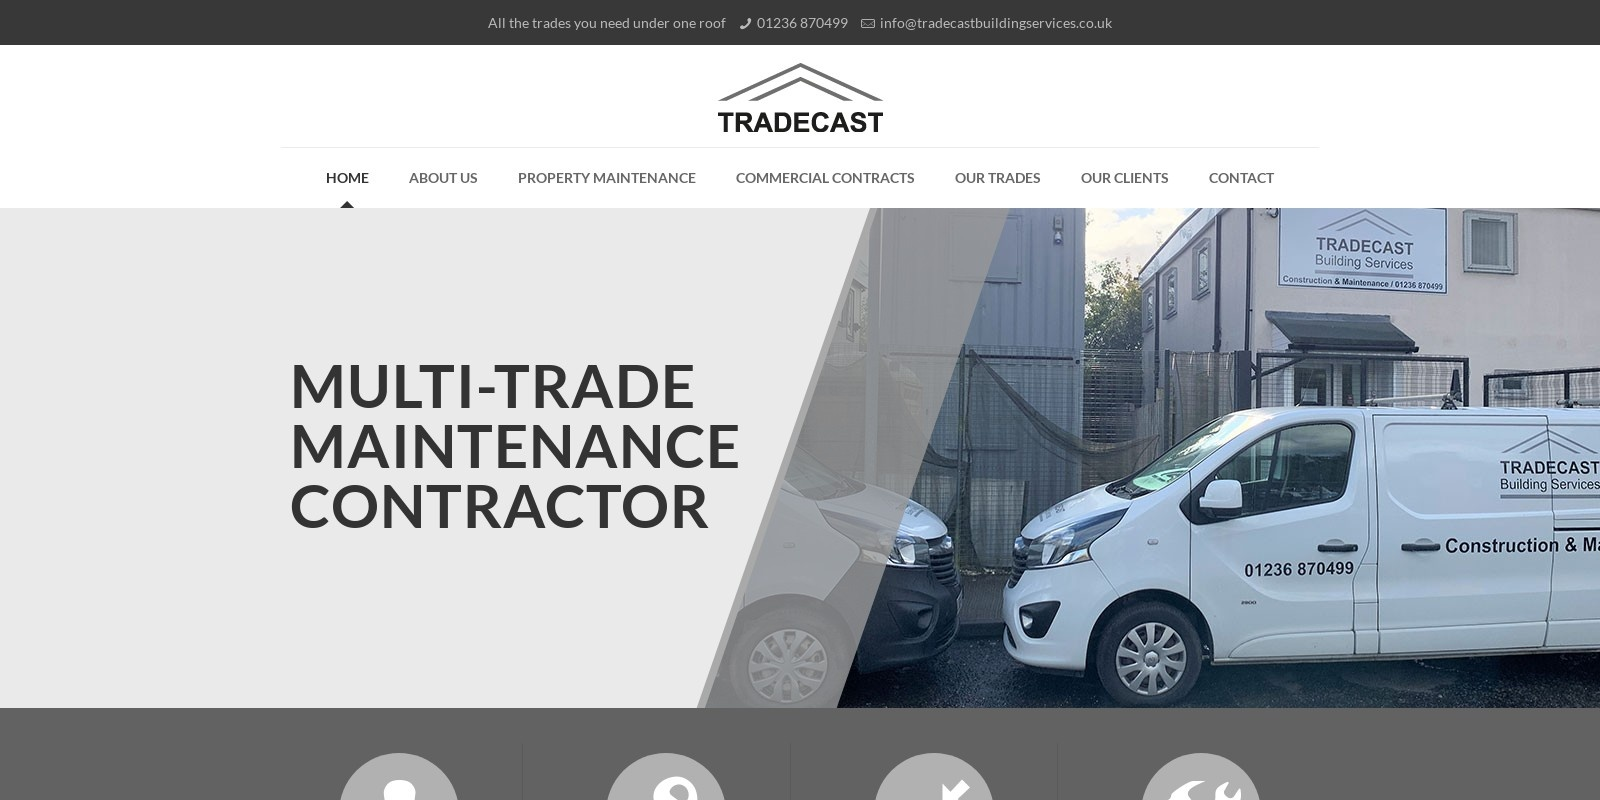 Preview of http://www.tradecastbuildingservices.co.uk